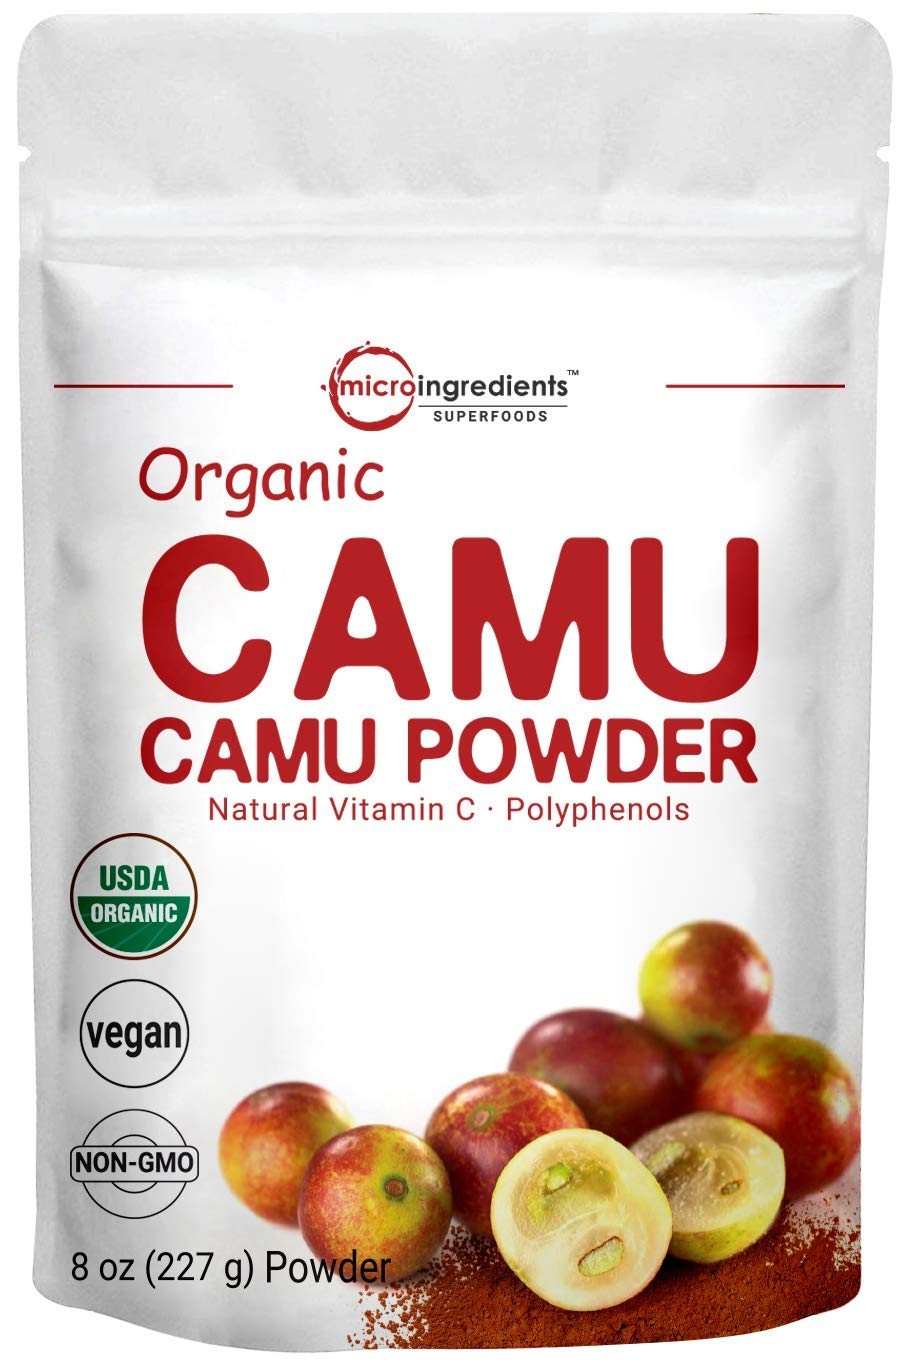 Peruvian Camu Camu Powder Organic, (Natural Vitamin C Supplement Powder), 8 Ounce, Strongly Supports Energy and Immune System, No GMOs and Vegan Friendly